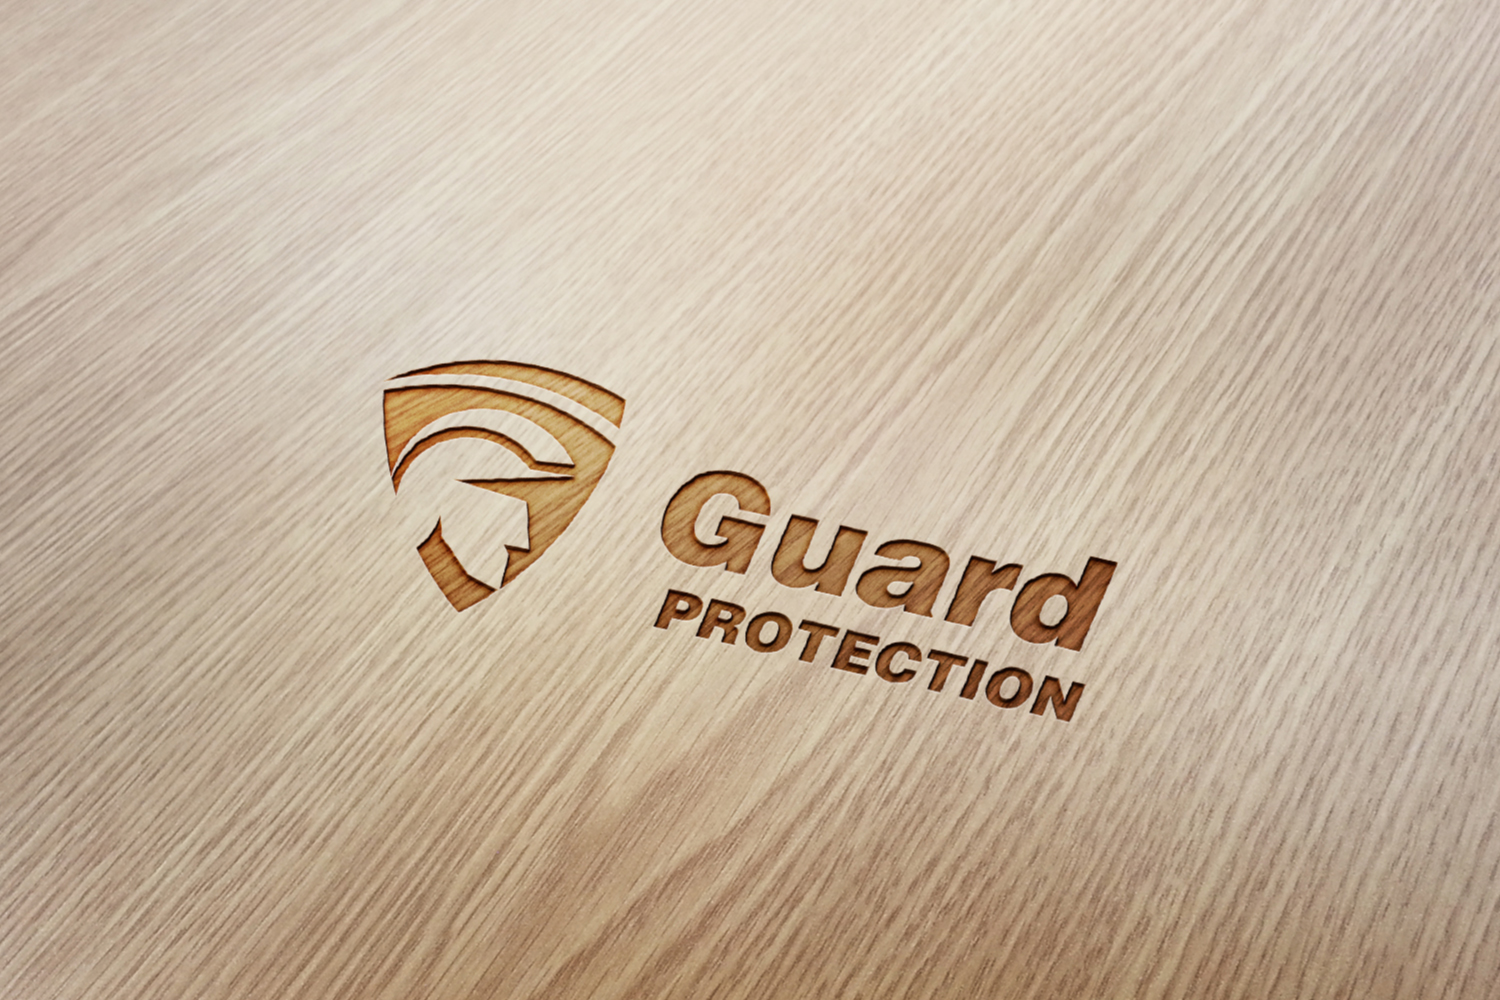 Police & Shield Logo, Guard Protection. example image 3